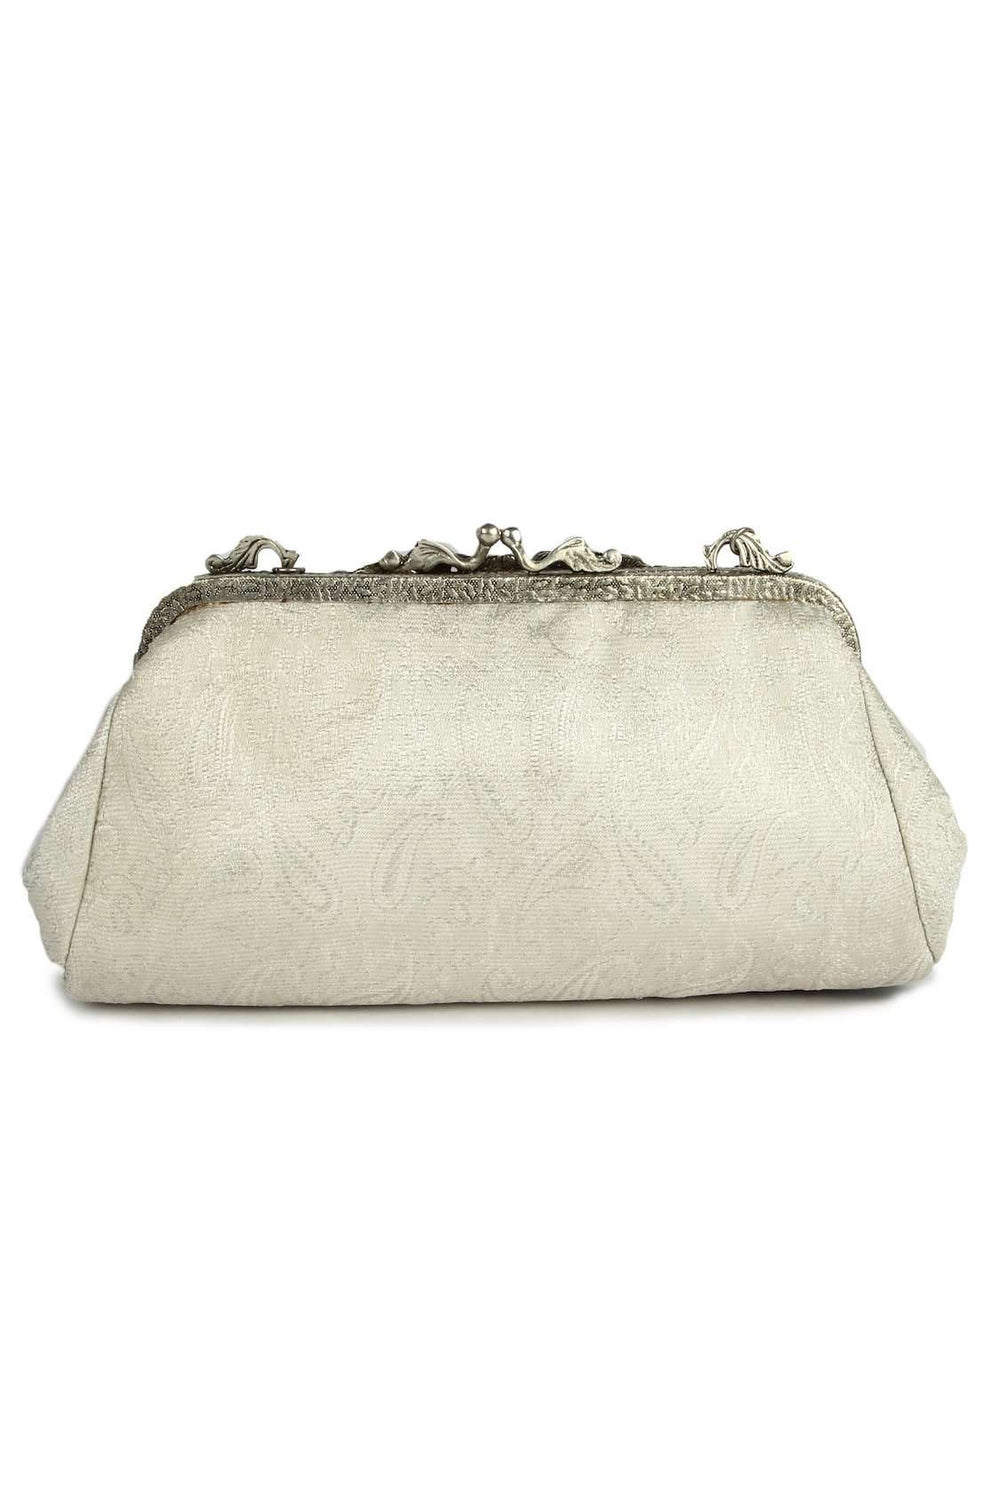 Riley White & Black Formal Evening HandBag